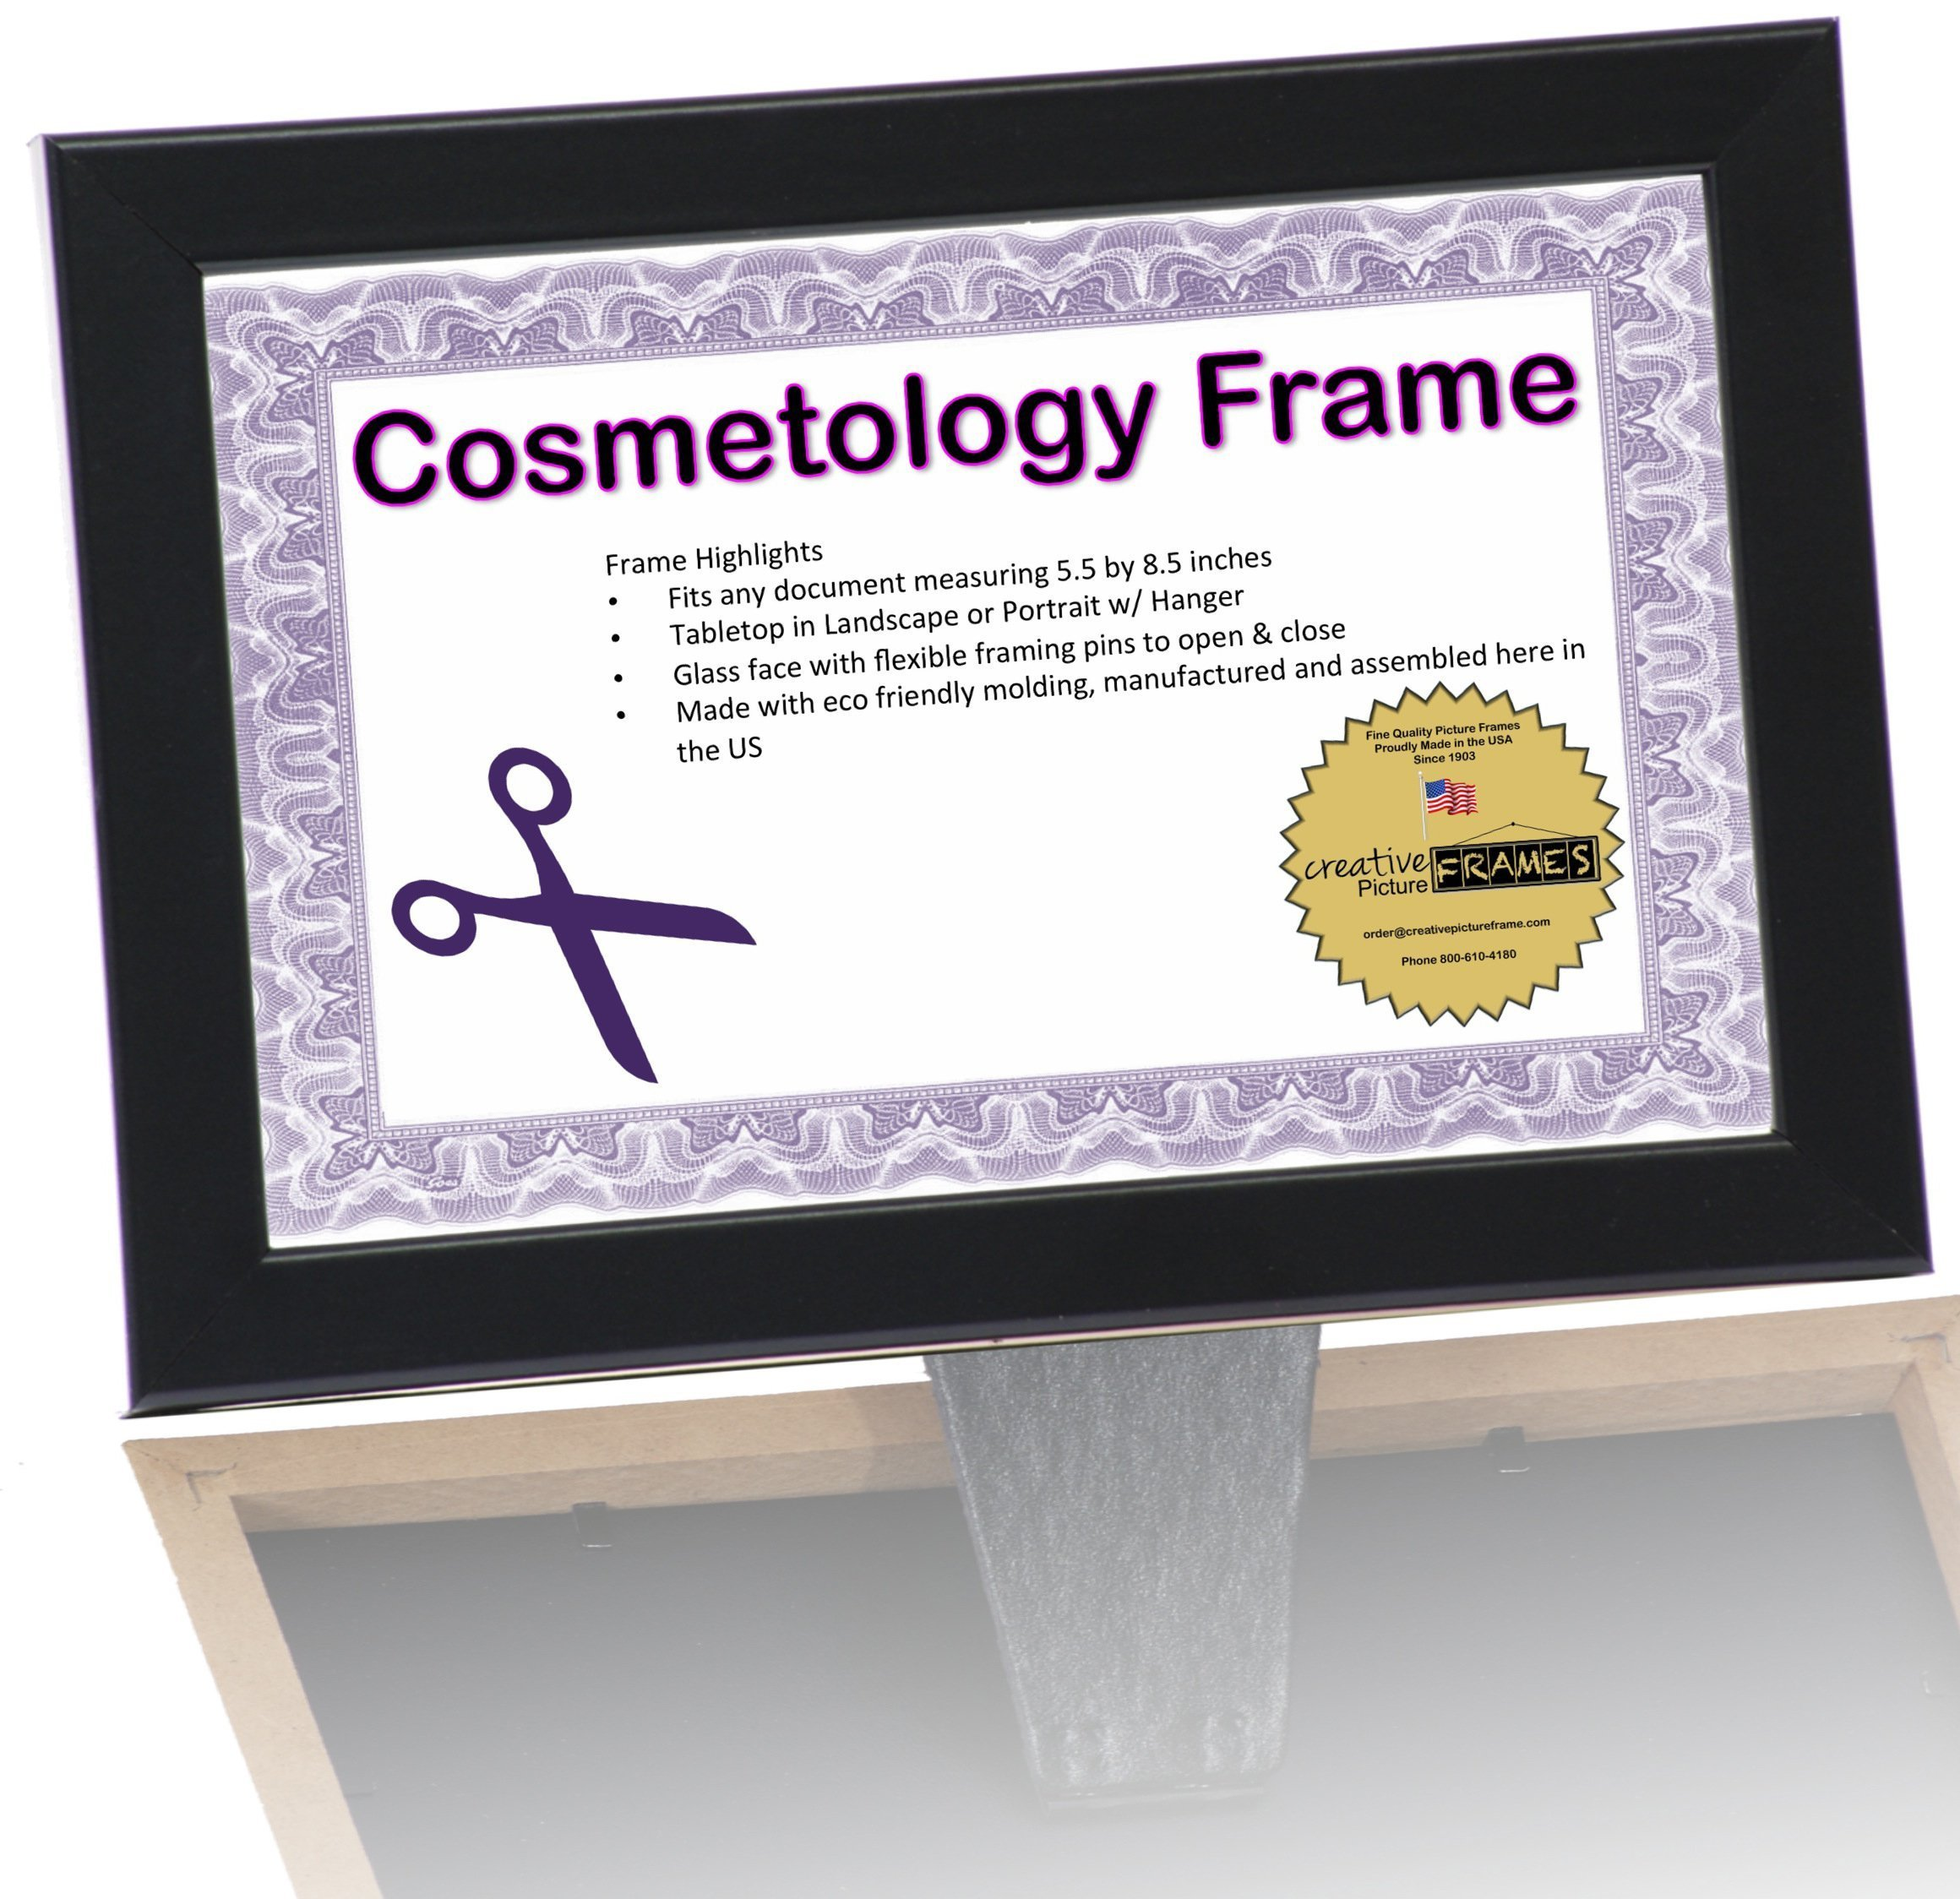 CreativePF- 8.5 by 5.5 inch Black License Frames for Cosmetology Professionals - State Board License Holder Displays Certificates, Tax License and more - Self Standing with Hanger